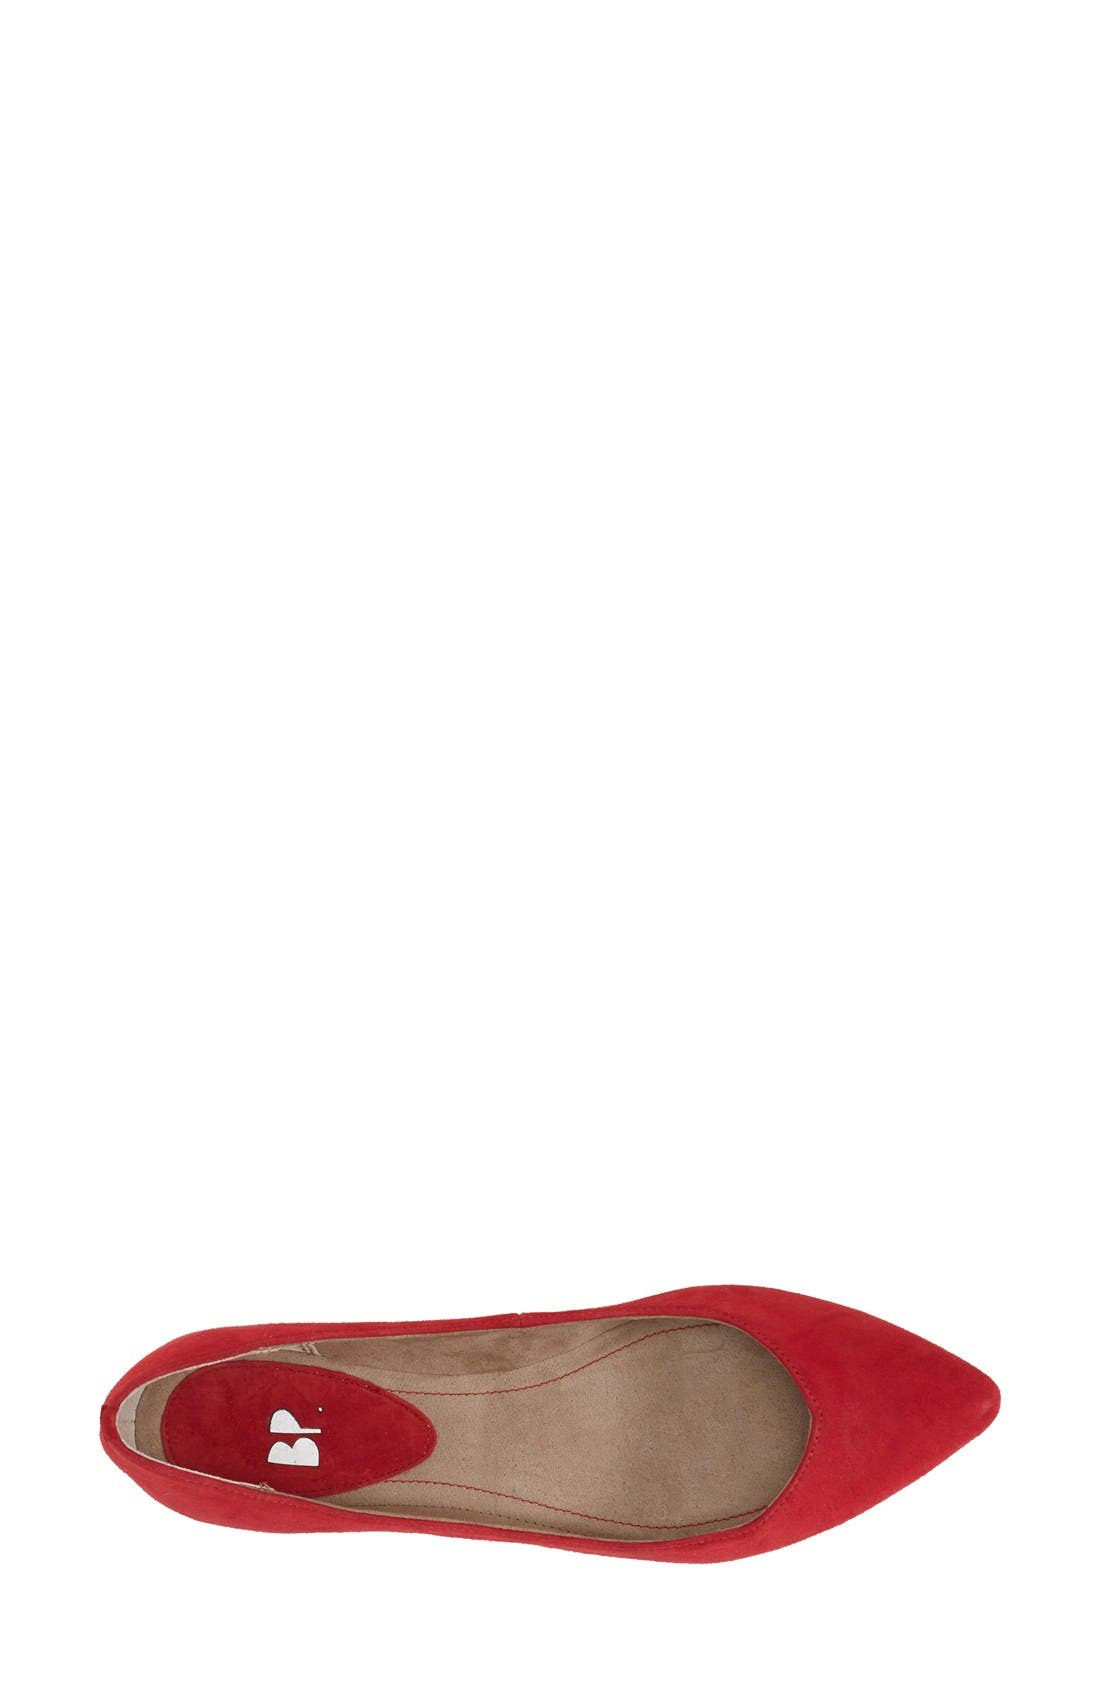 'Moveover' Pointy Toe Leather Flat,                             Alternate thumbnail 4, color,                             Red Suede